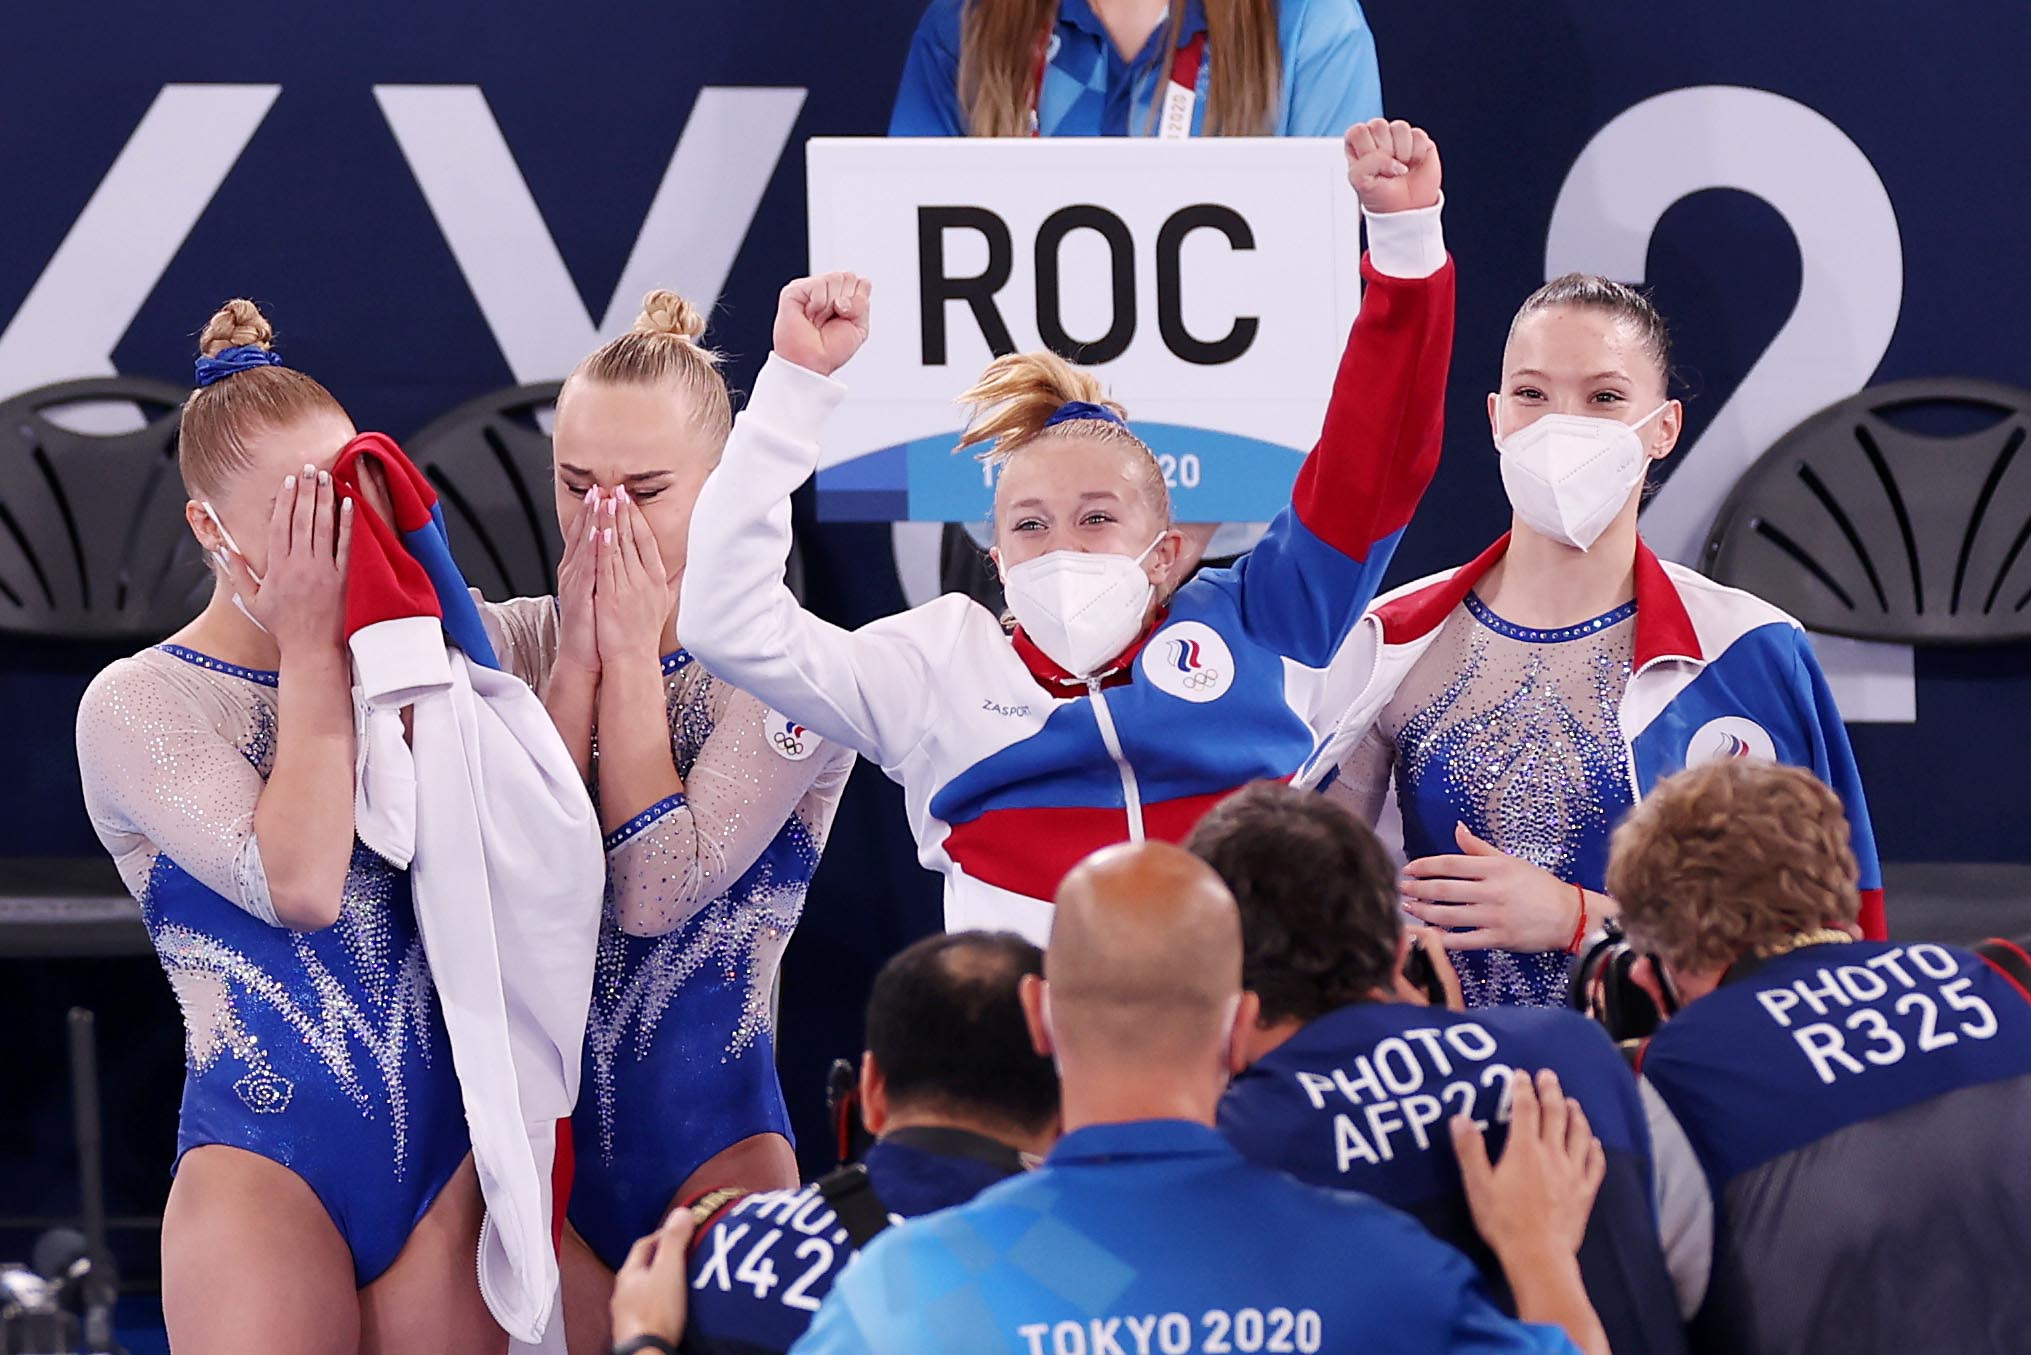 Team ROC celebrates winning the gold medal during the gymnastics Women's Team Final on July 27.